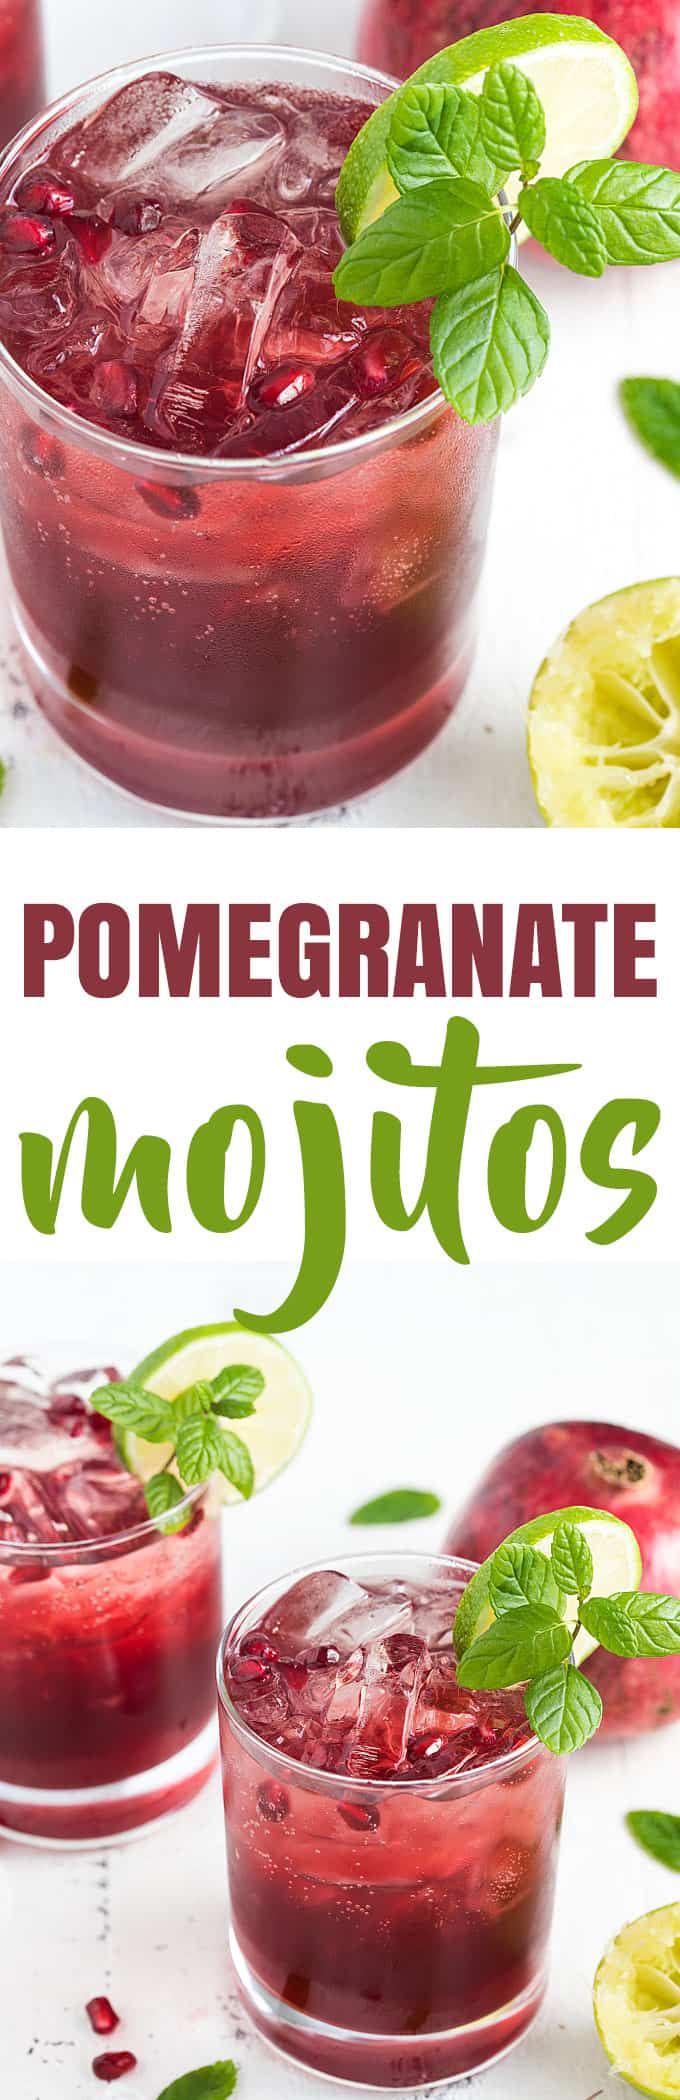 Pomegranate Mojitos - An easy, fun and refreshing festive holiday cocktail!